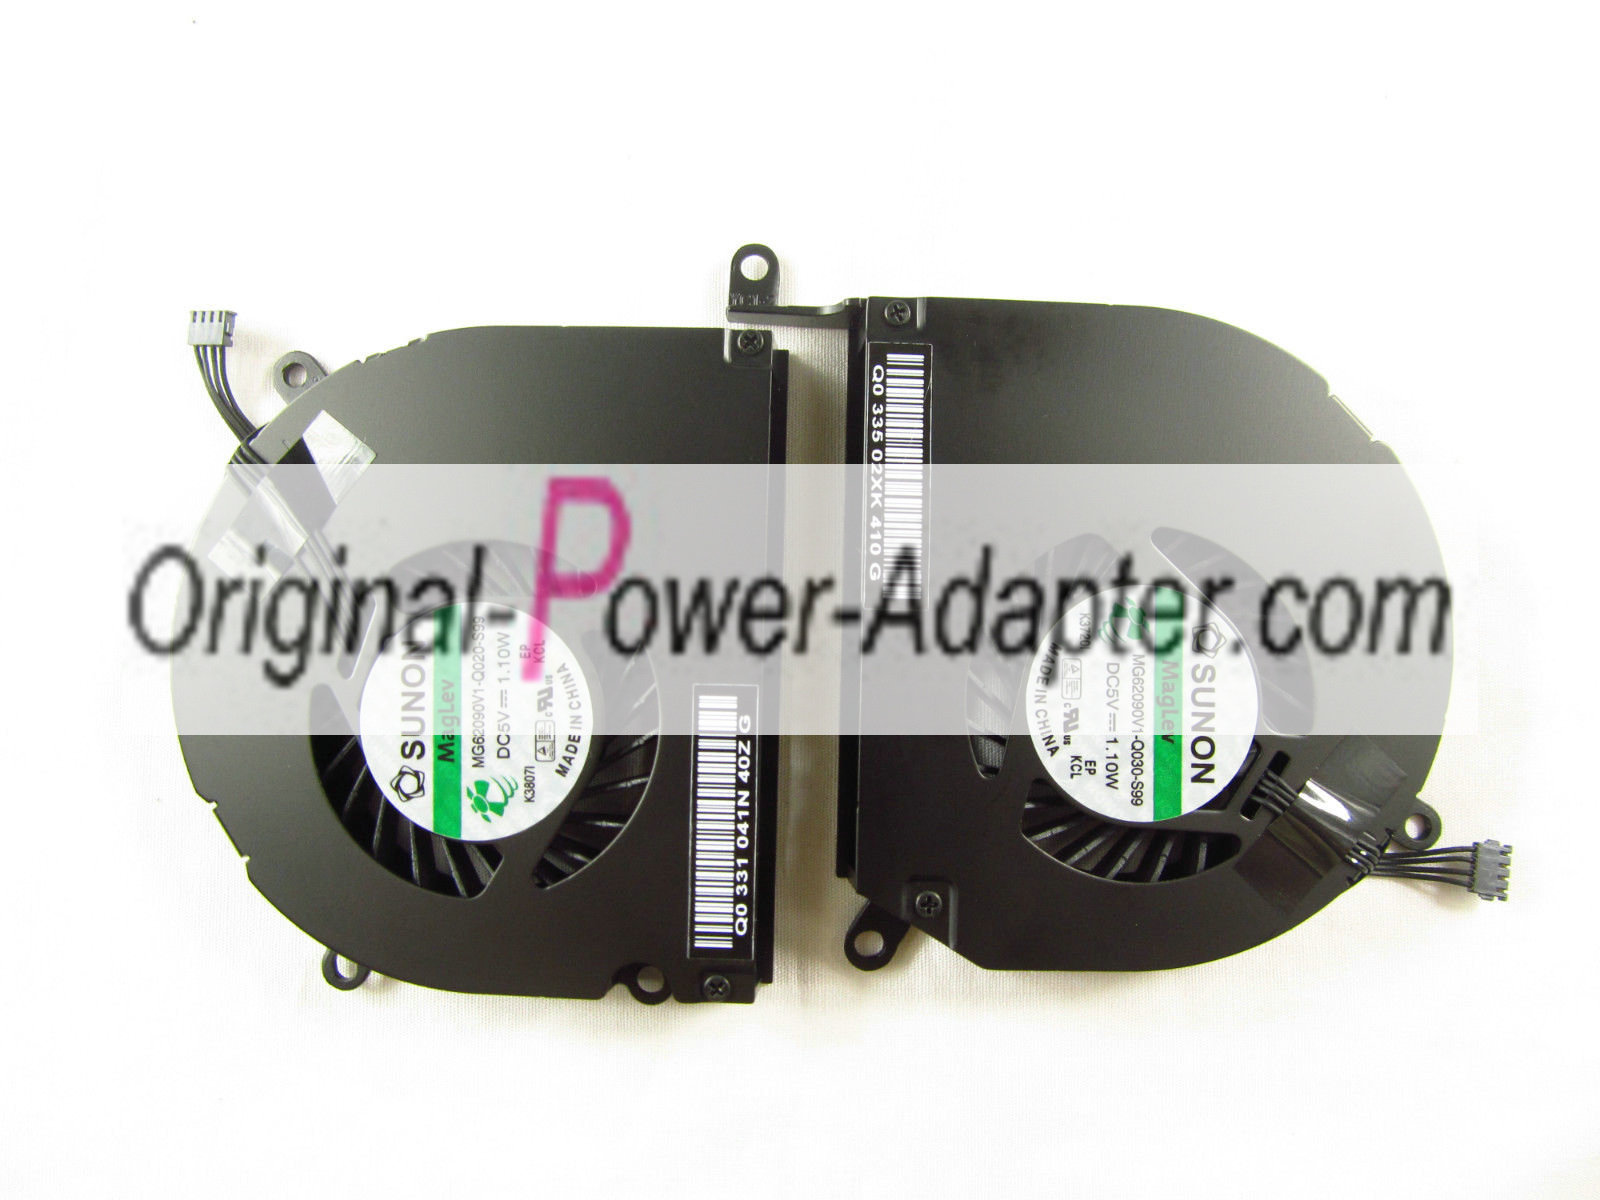 "NEW Left Right Fan For Apple MacBook Pro 15"" A1286 2008 -2011"